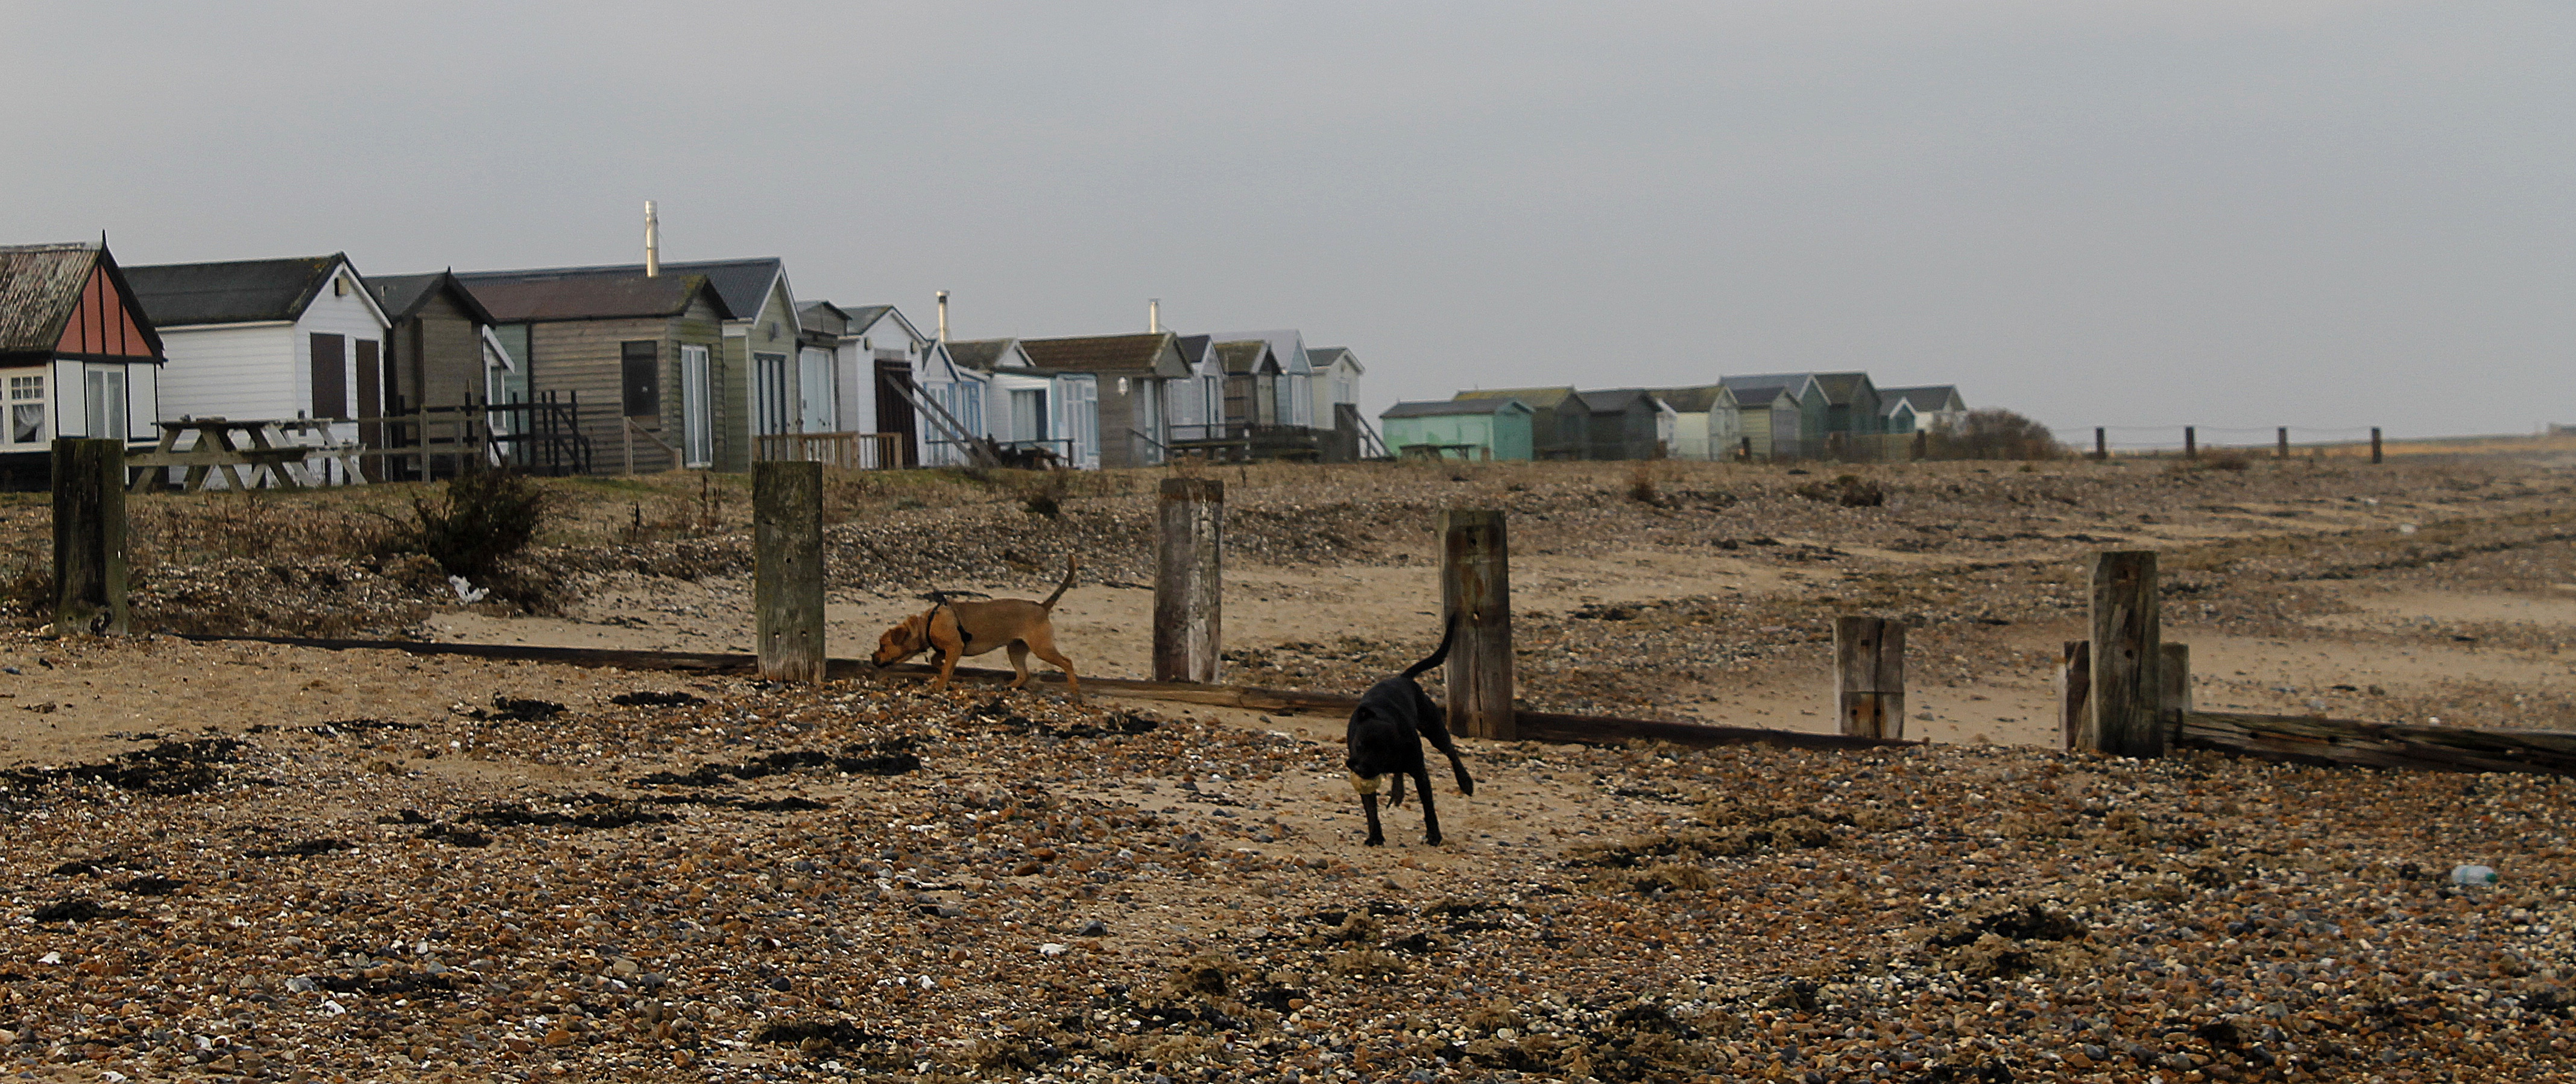 dogs-and-huts